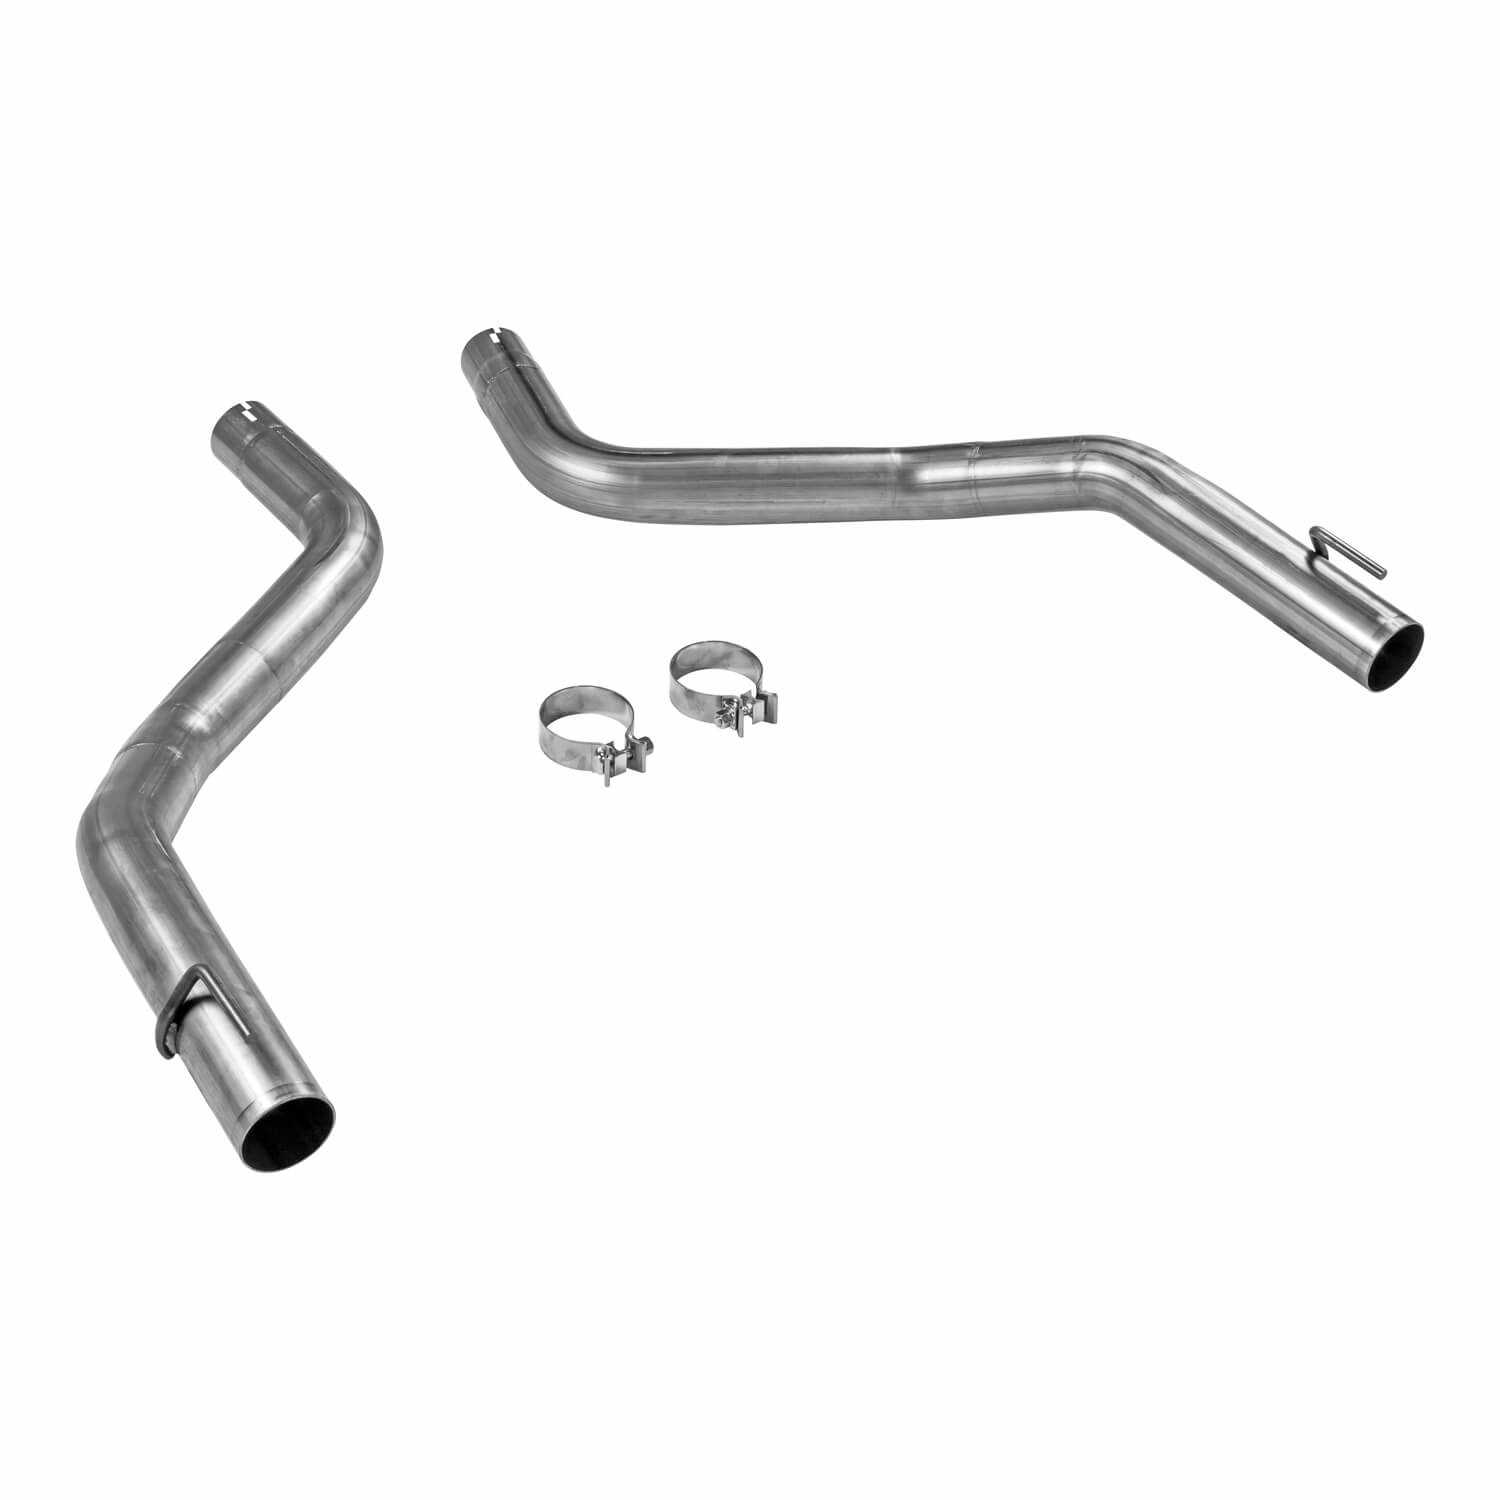 817780 Flowmaster American Thunder Axle Back Exhaust System